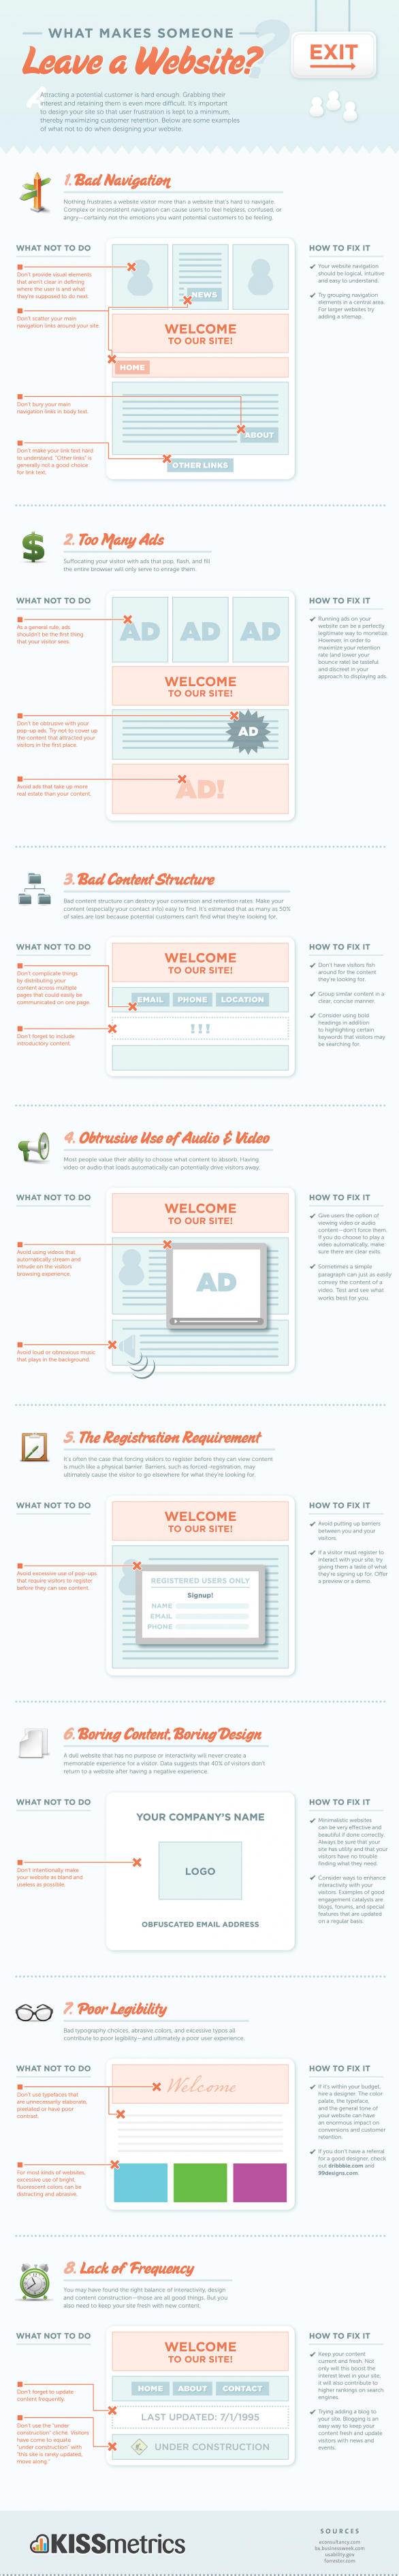 Leave a website  infographic